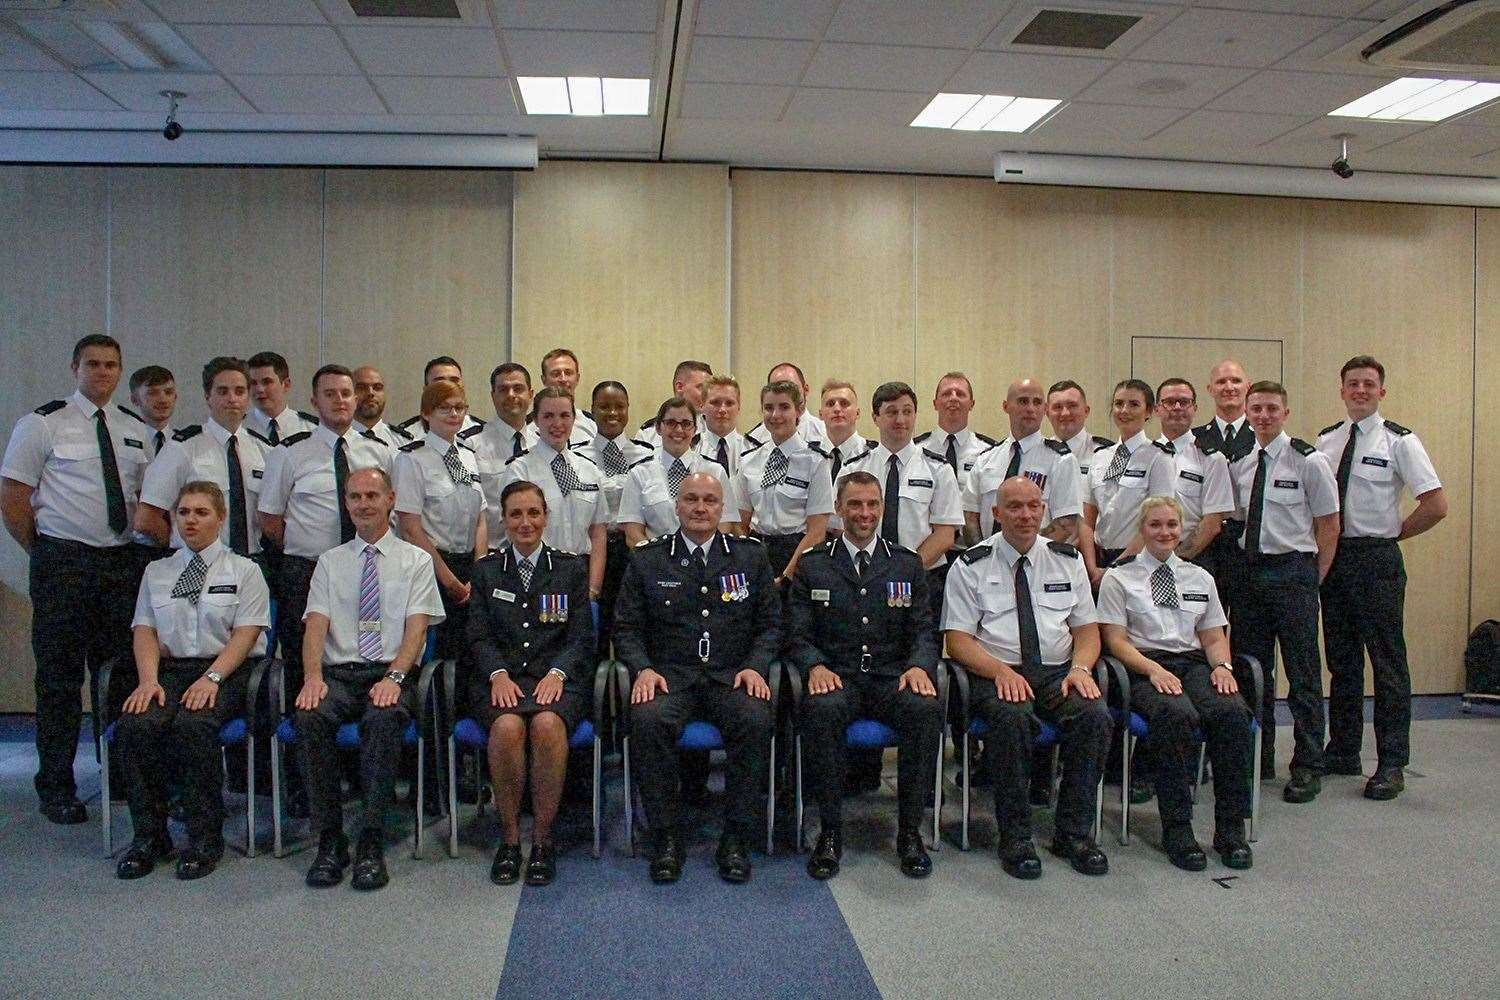 The 28 new police recruits with the county's senior officers at their passing out ceremony. (13391201)